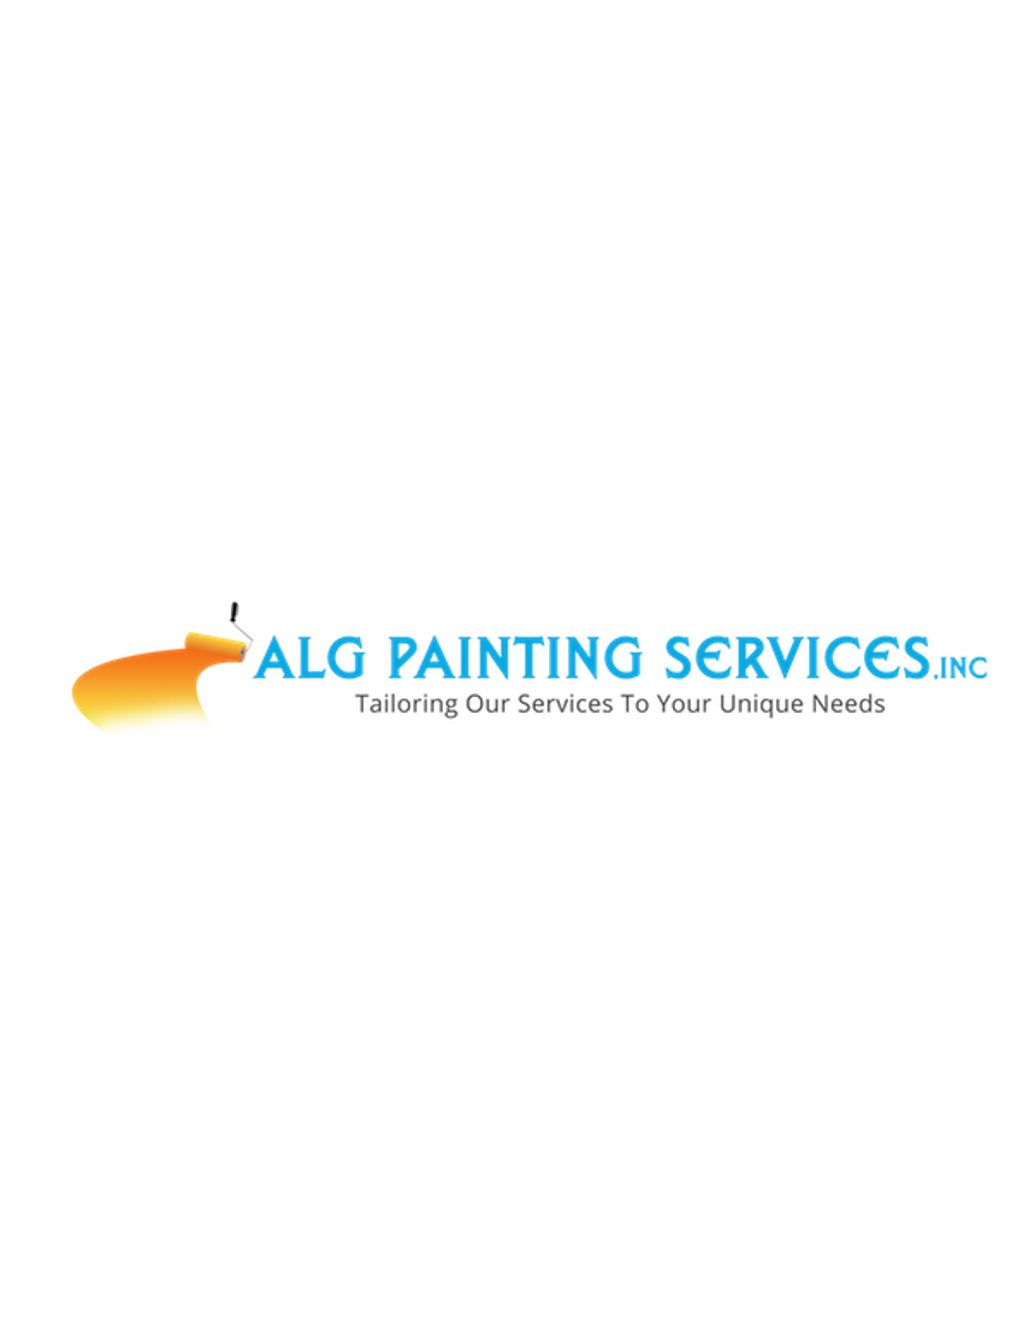 ALG Painting Services,INC